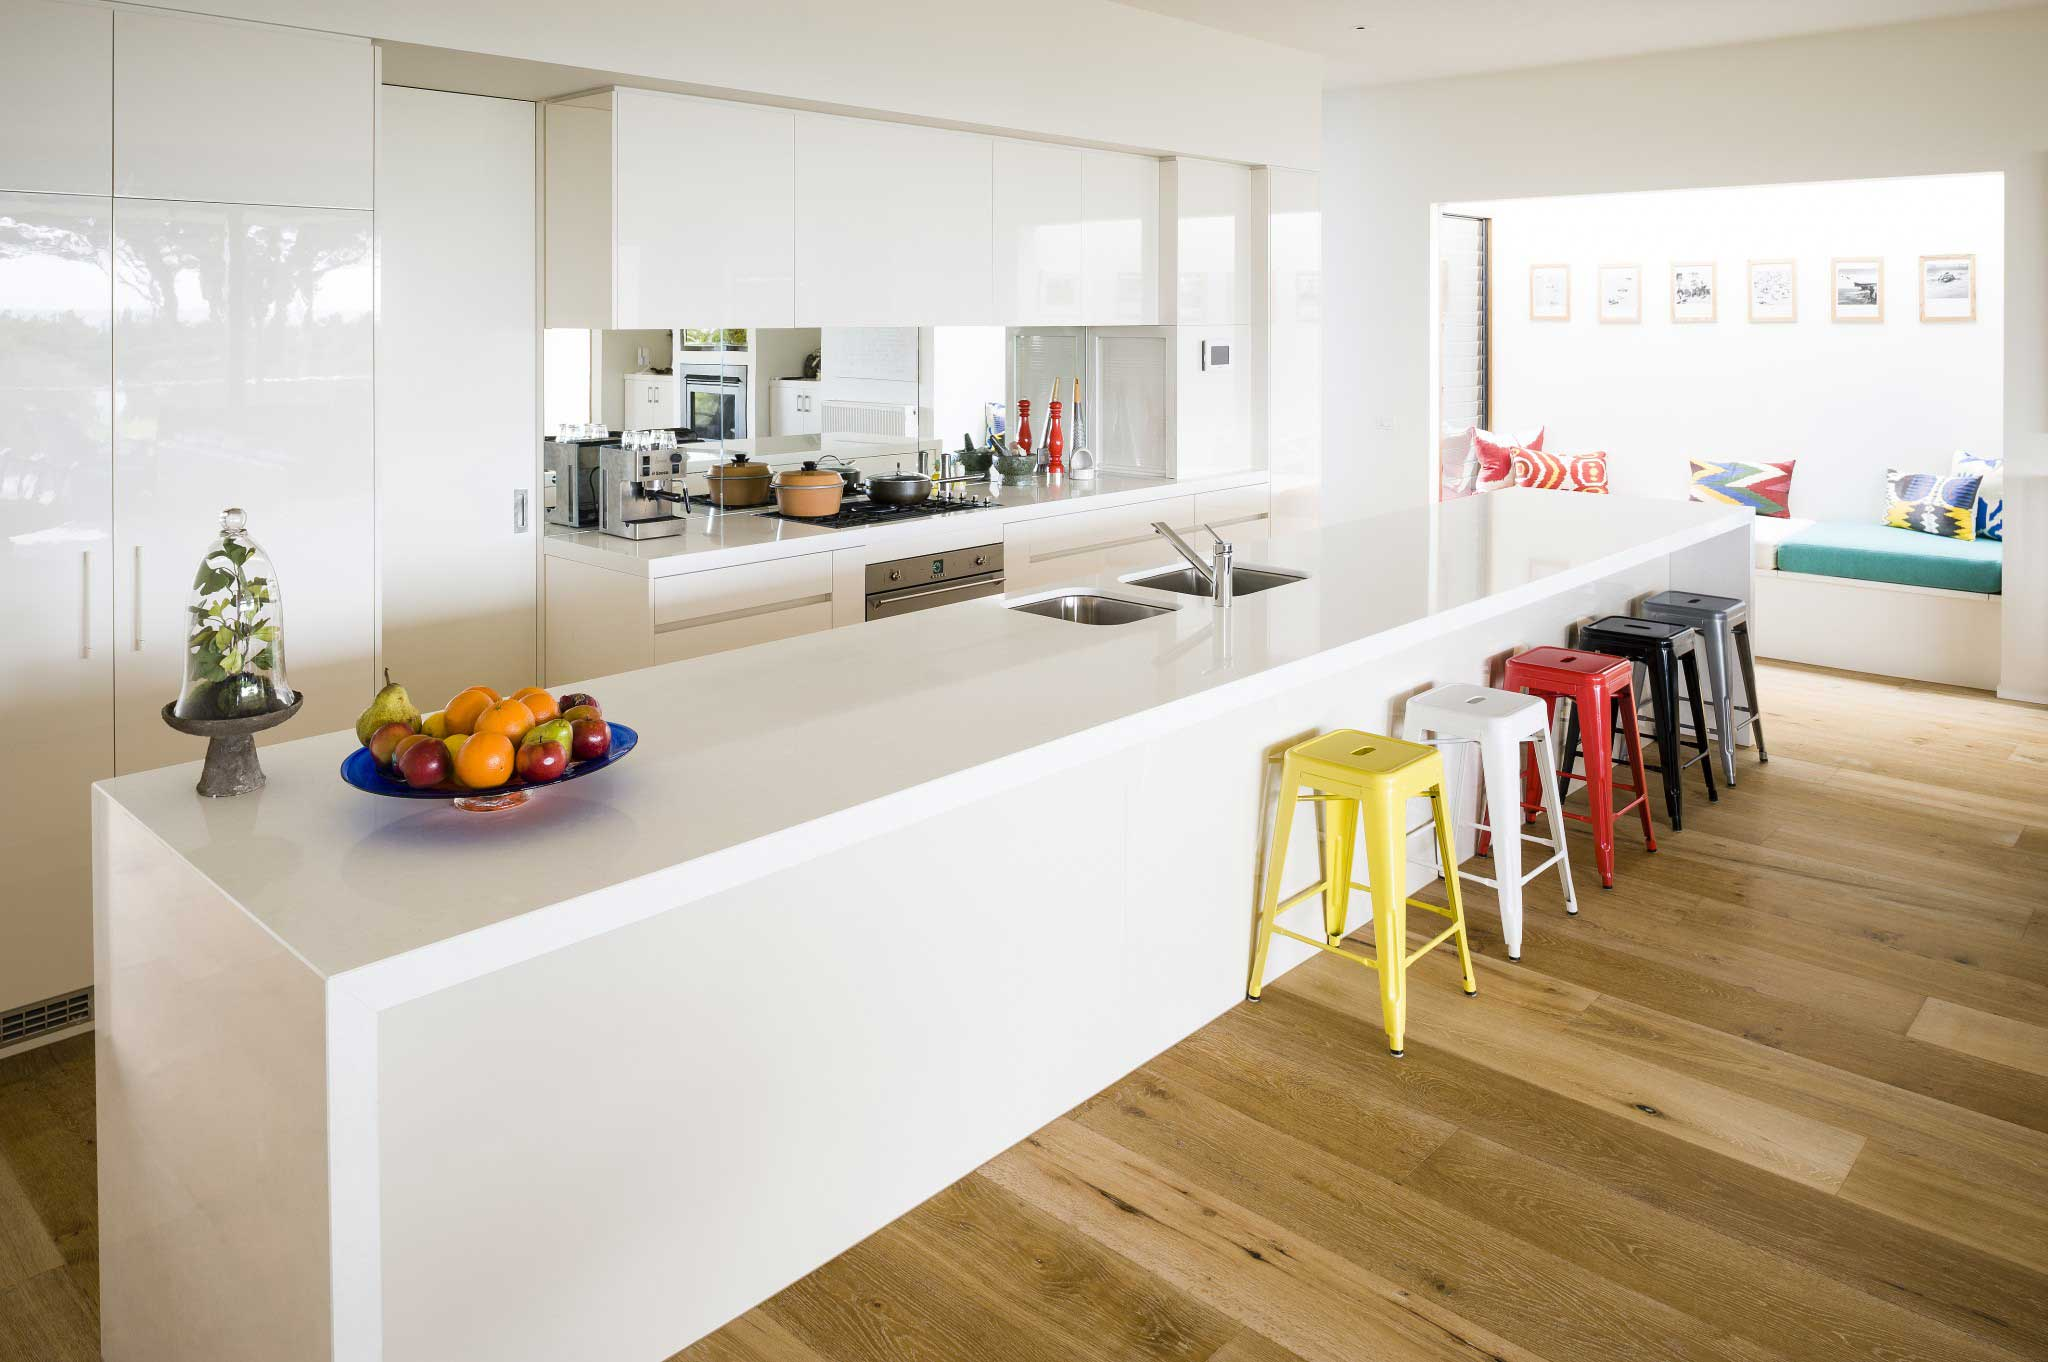 melbourne kitchen renovations & design | rosemount kitchens